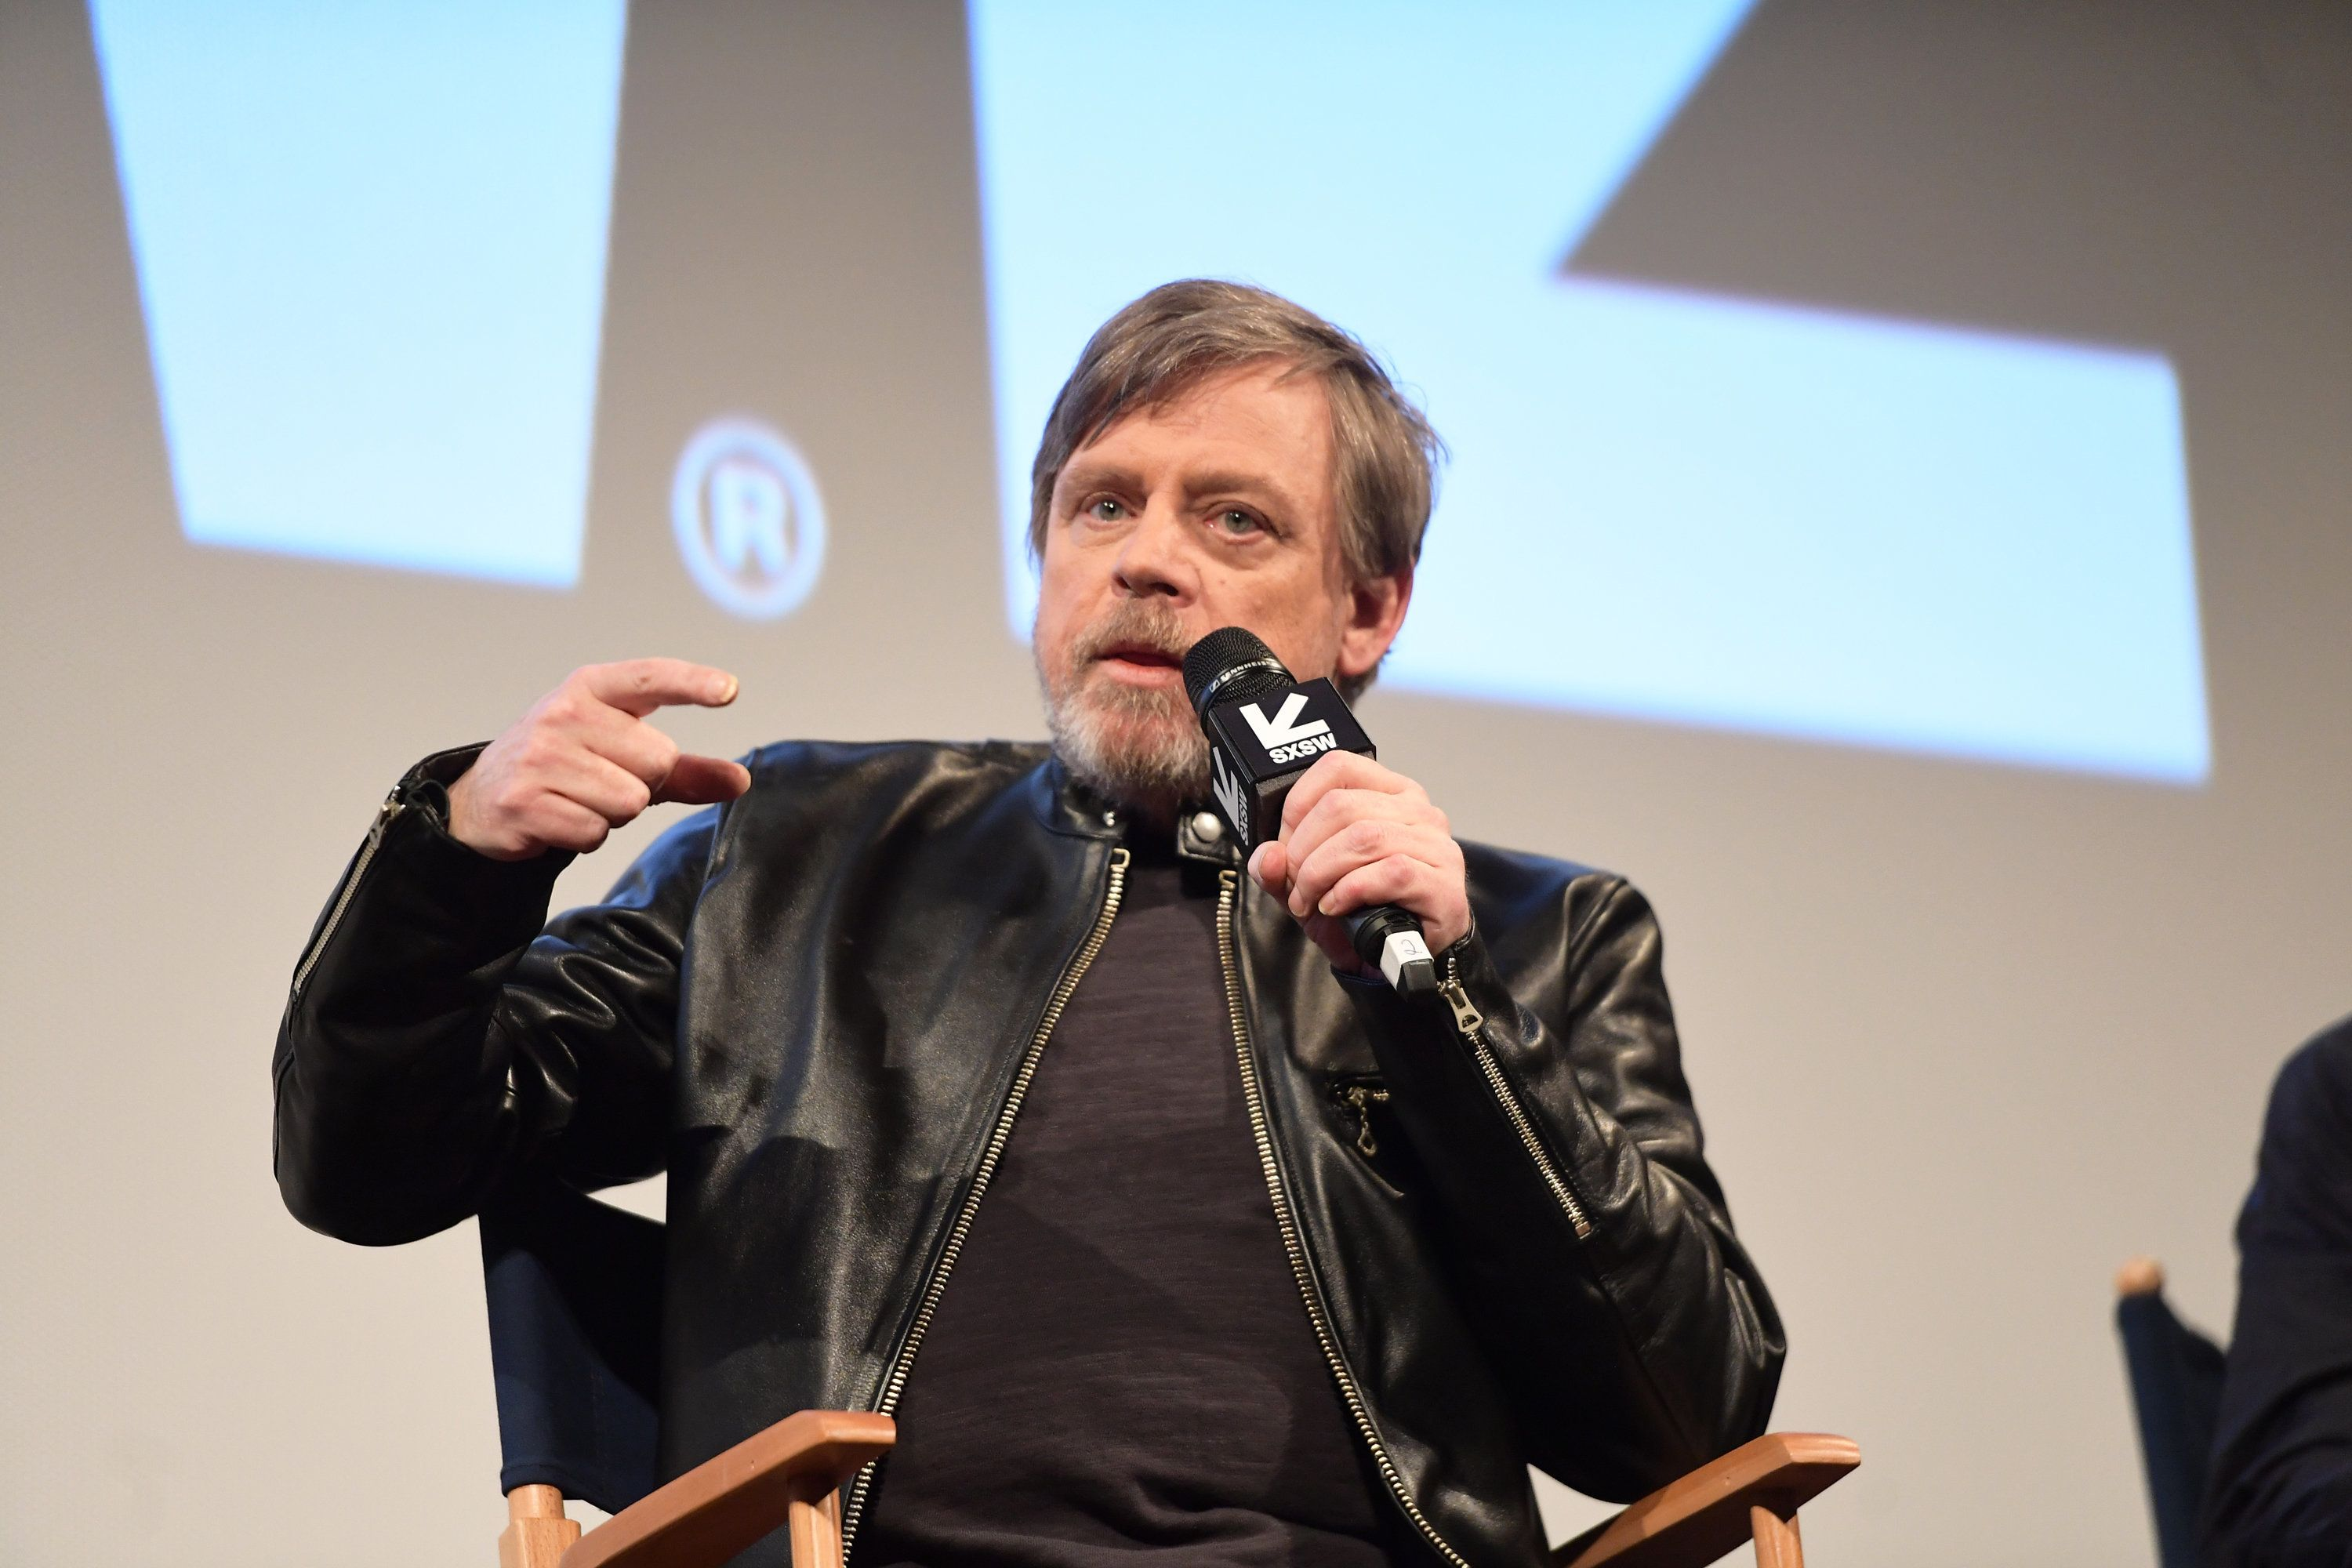 AUSTIN, TX - MARCH 12:  Mark Hamill attends the 'The Director and The Jedi' Premiere 2018 SXSW Conference and Festivals at Paramount Theatre on March 12, 2018 in Austin, Texas.  (Photo by Matt Winkelmeyer/Getty Images for SXSW)